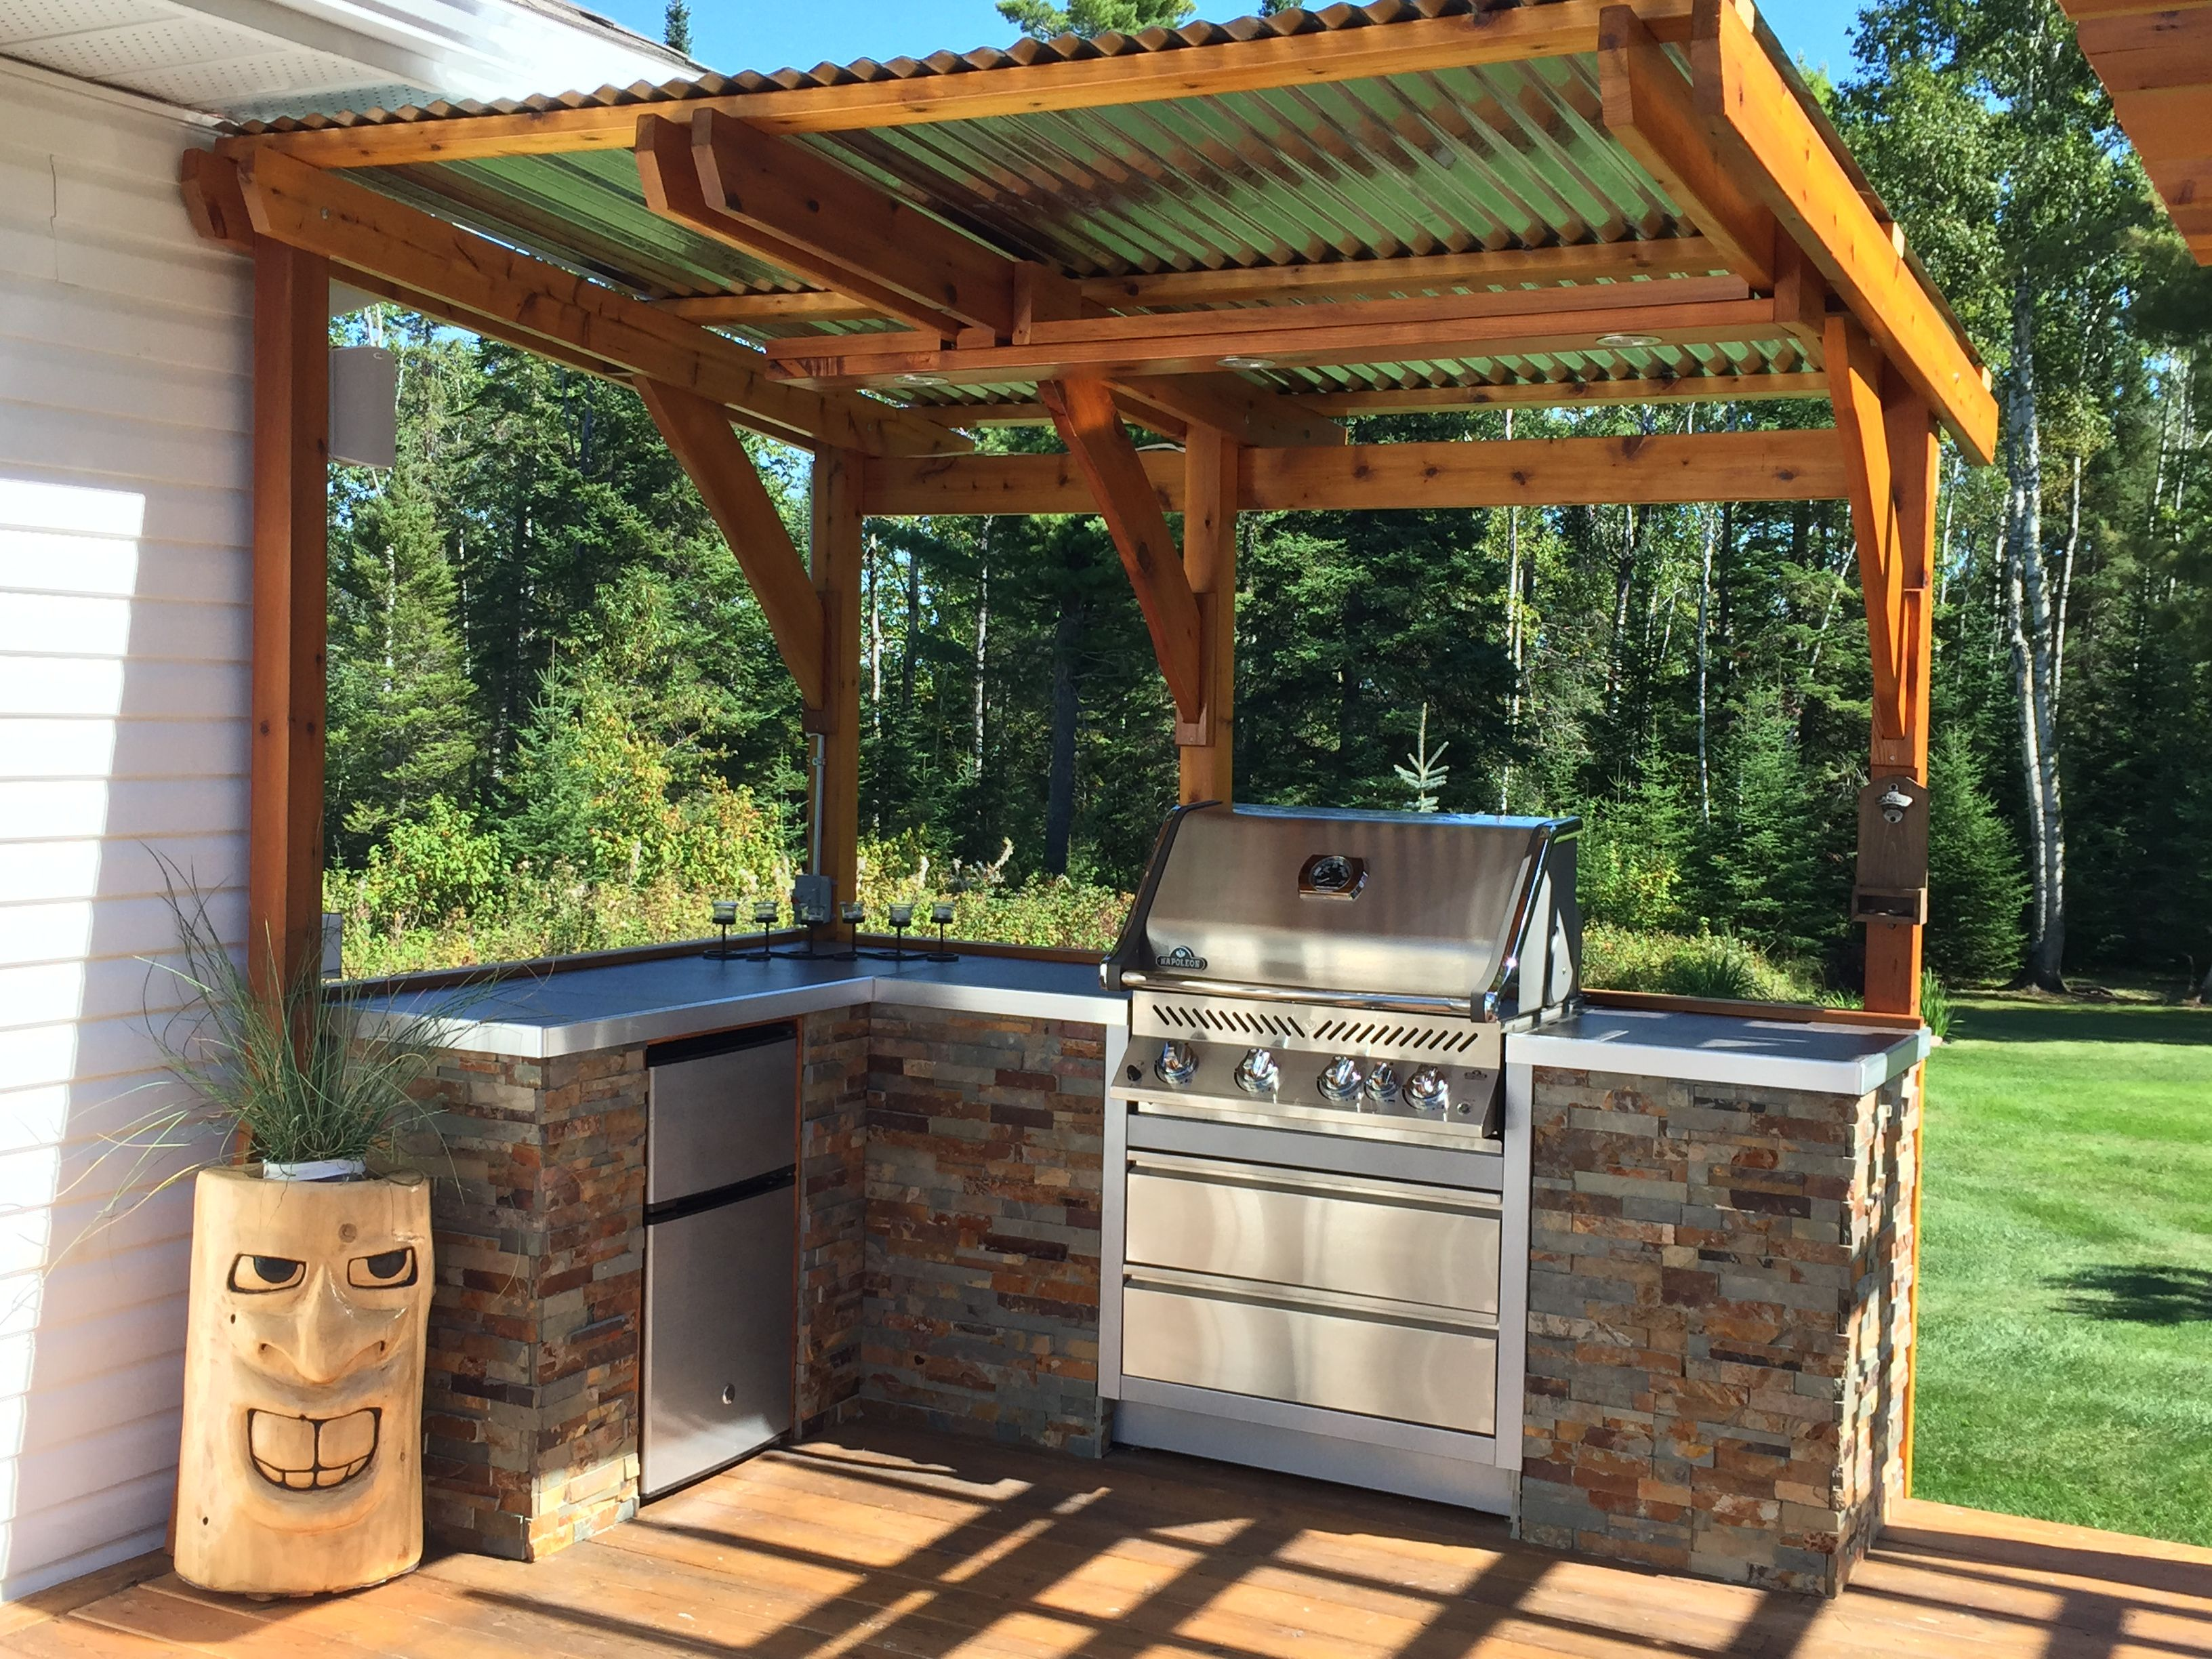 diy outdoor kitchen construction plans go to www diyoutdoorfireplaces com to learn mor on outdoor kitchen yard id=66253